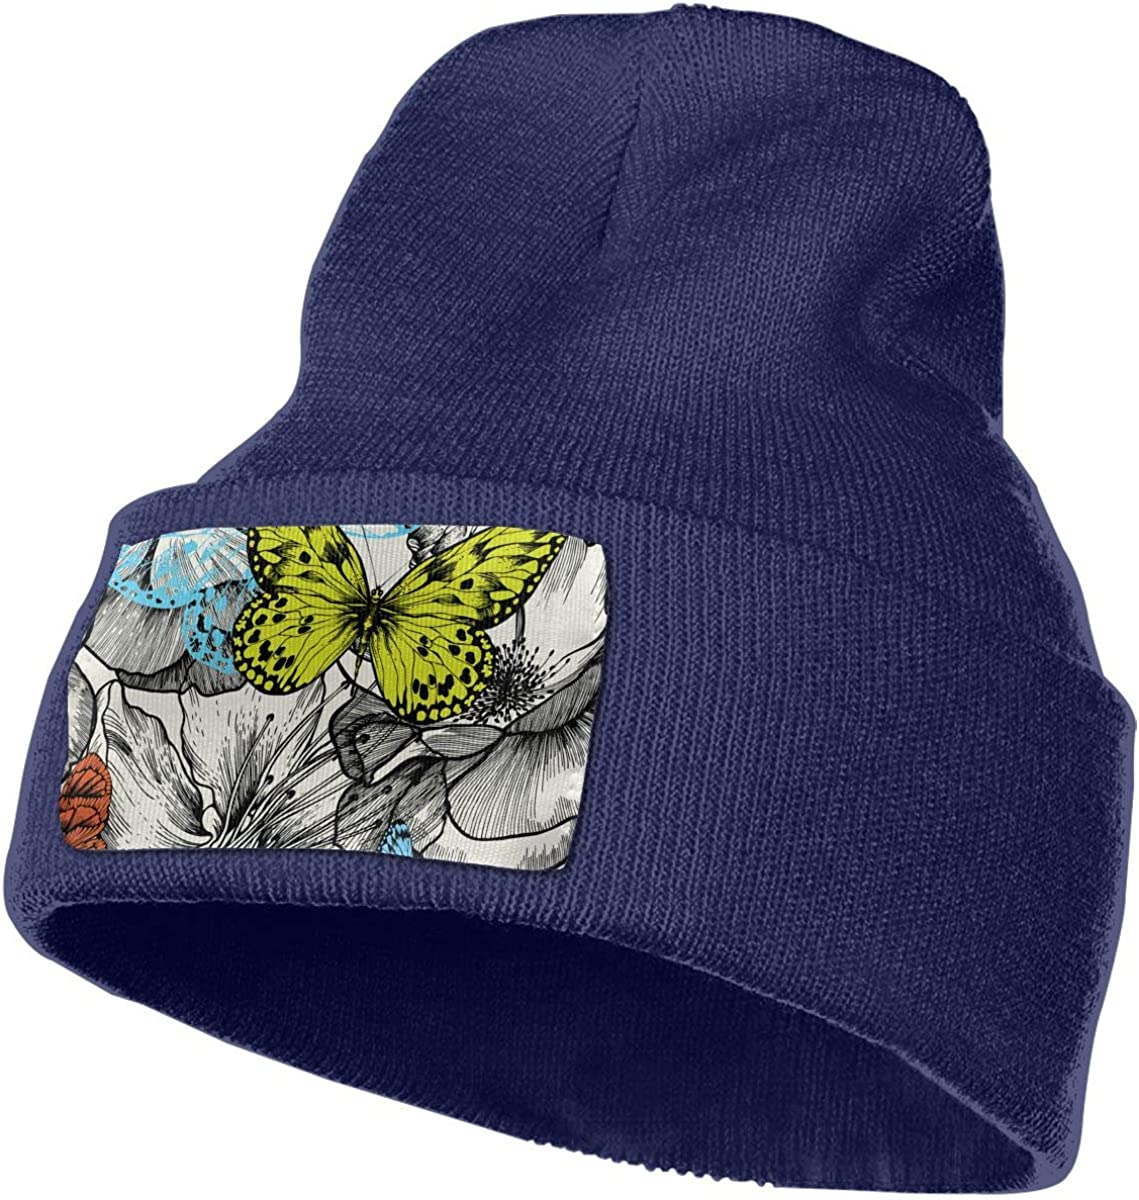 QZqDQ Roses and Flying Butterflies Unisex Fashion Knitted Hat Luxury Hip-Hop Cap